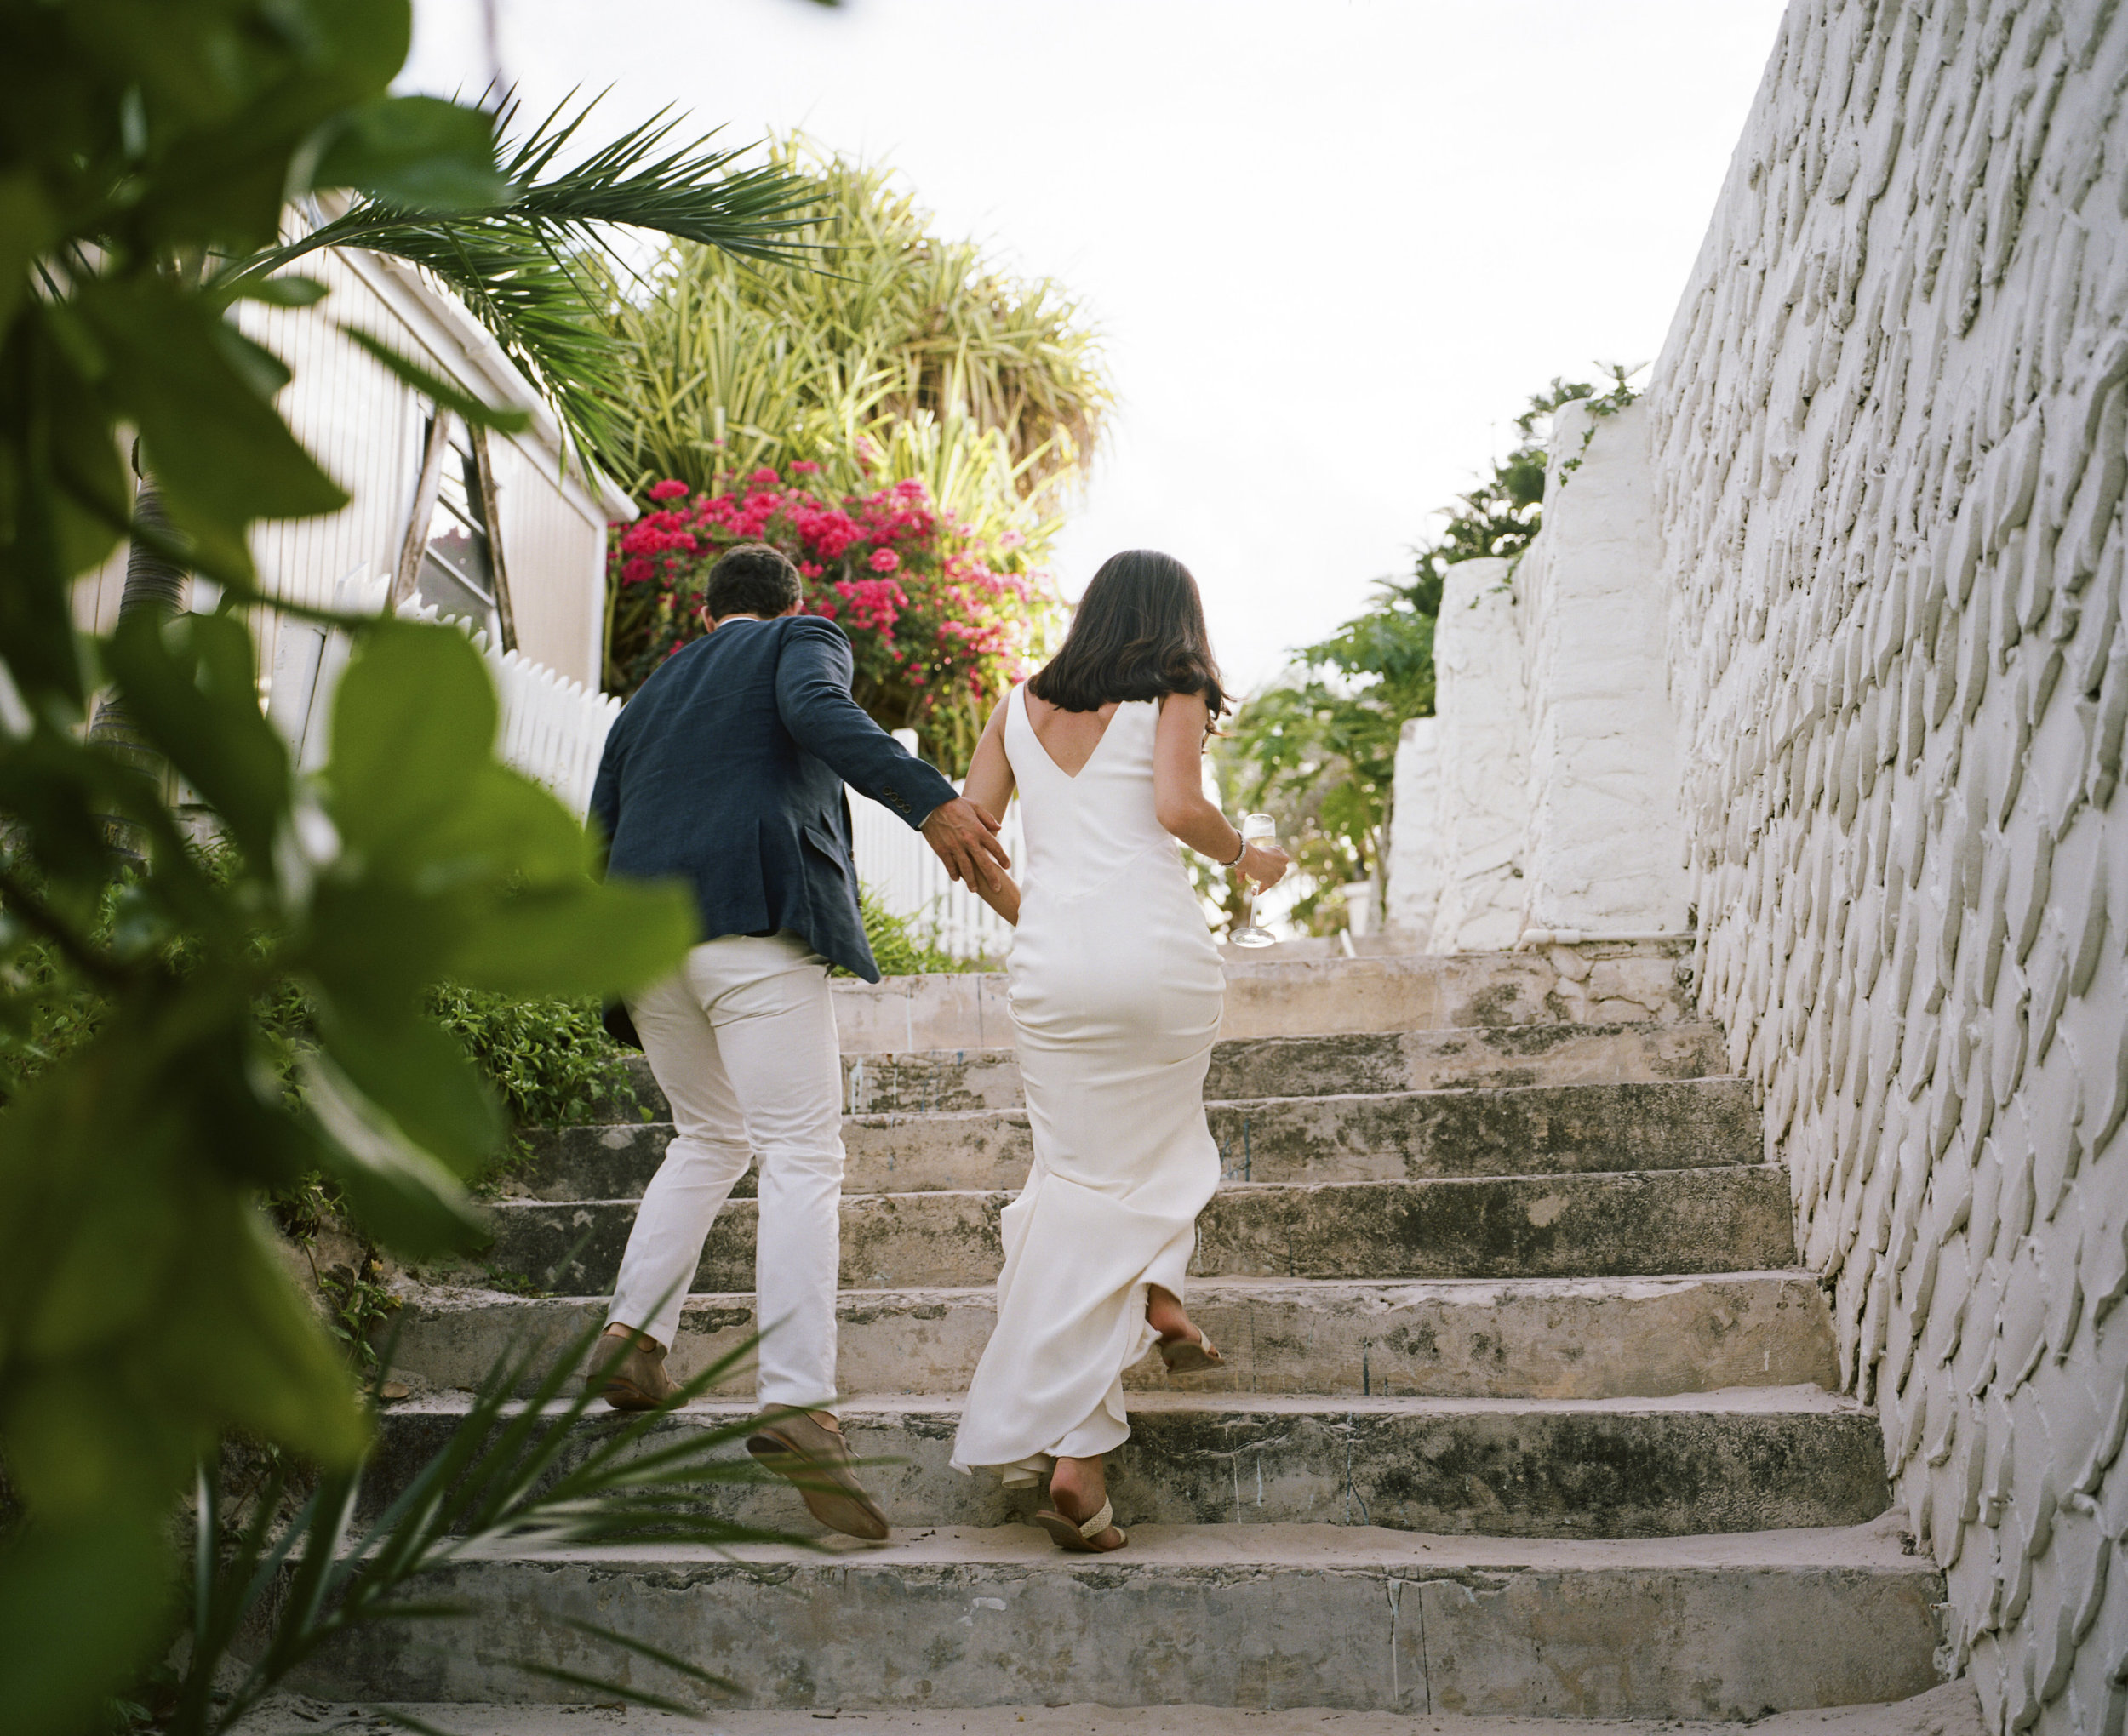 Peter & Steph - Harbour Island, The Bahamas